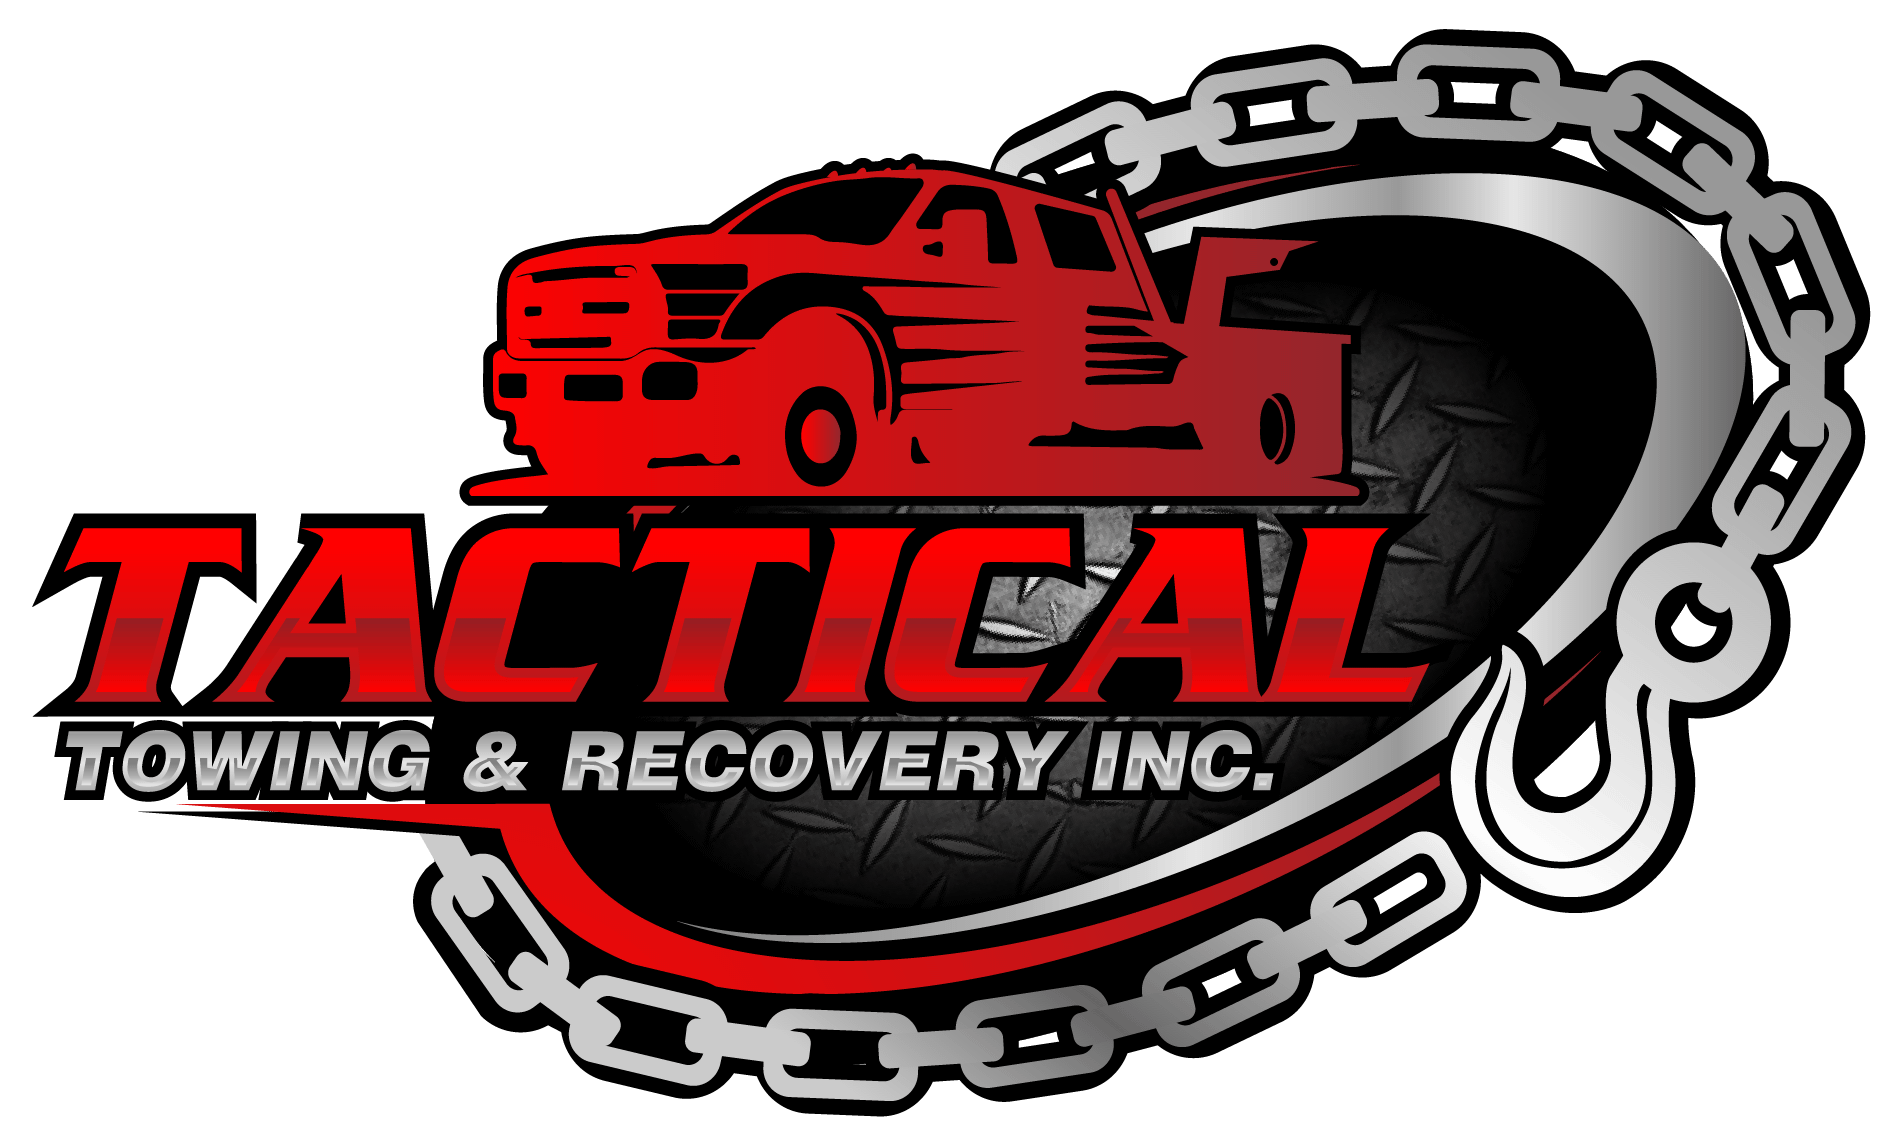 Tactical Towing & Recovery, LLC